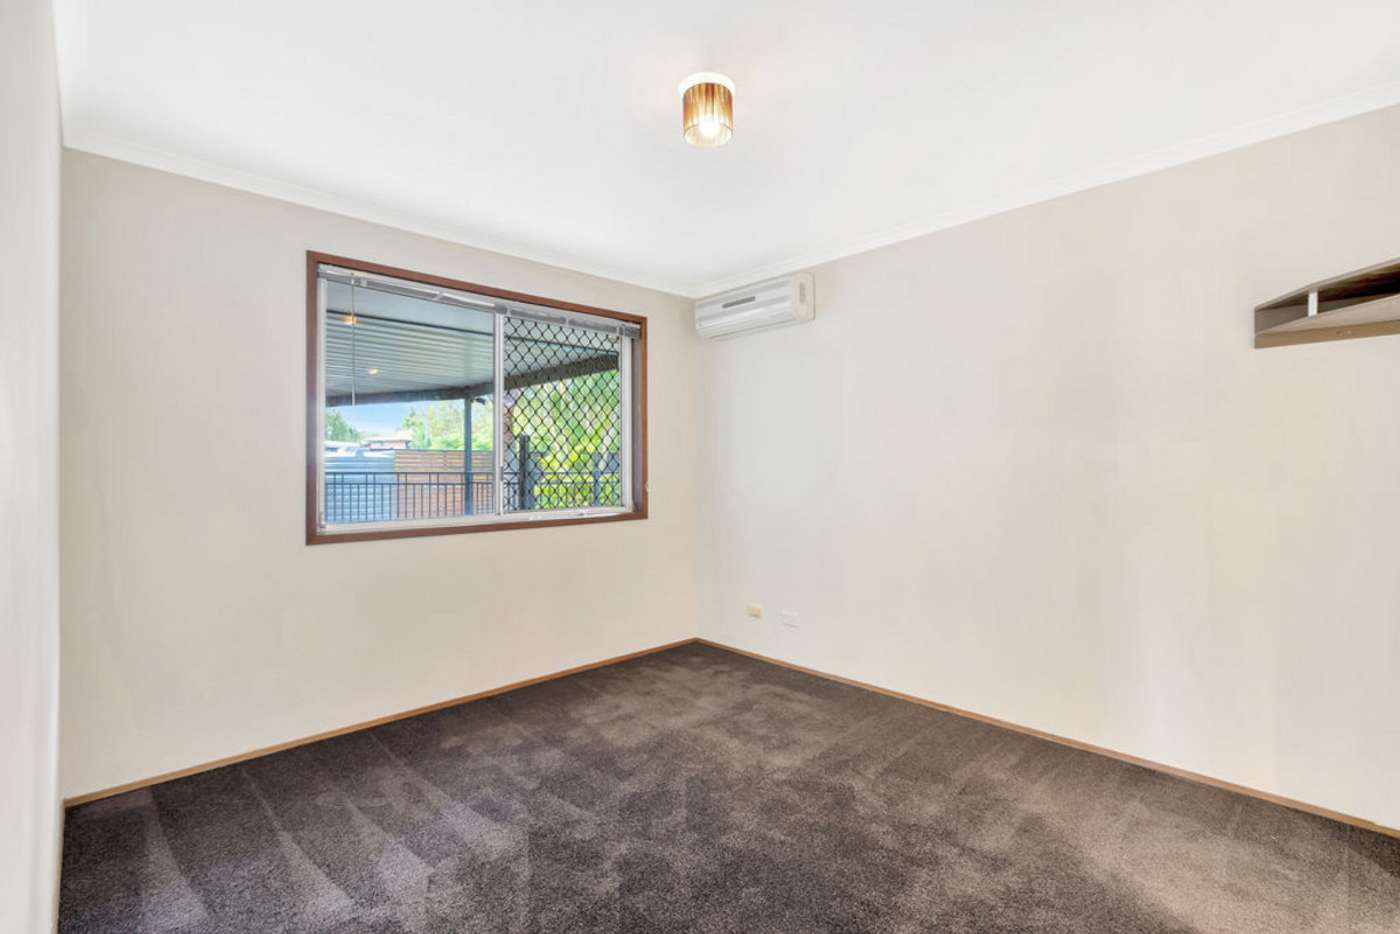 Seventh view of Homely house listing, 11 Kenneth Drive, Highland Park QLD 4211